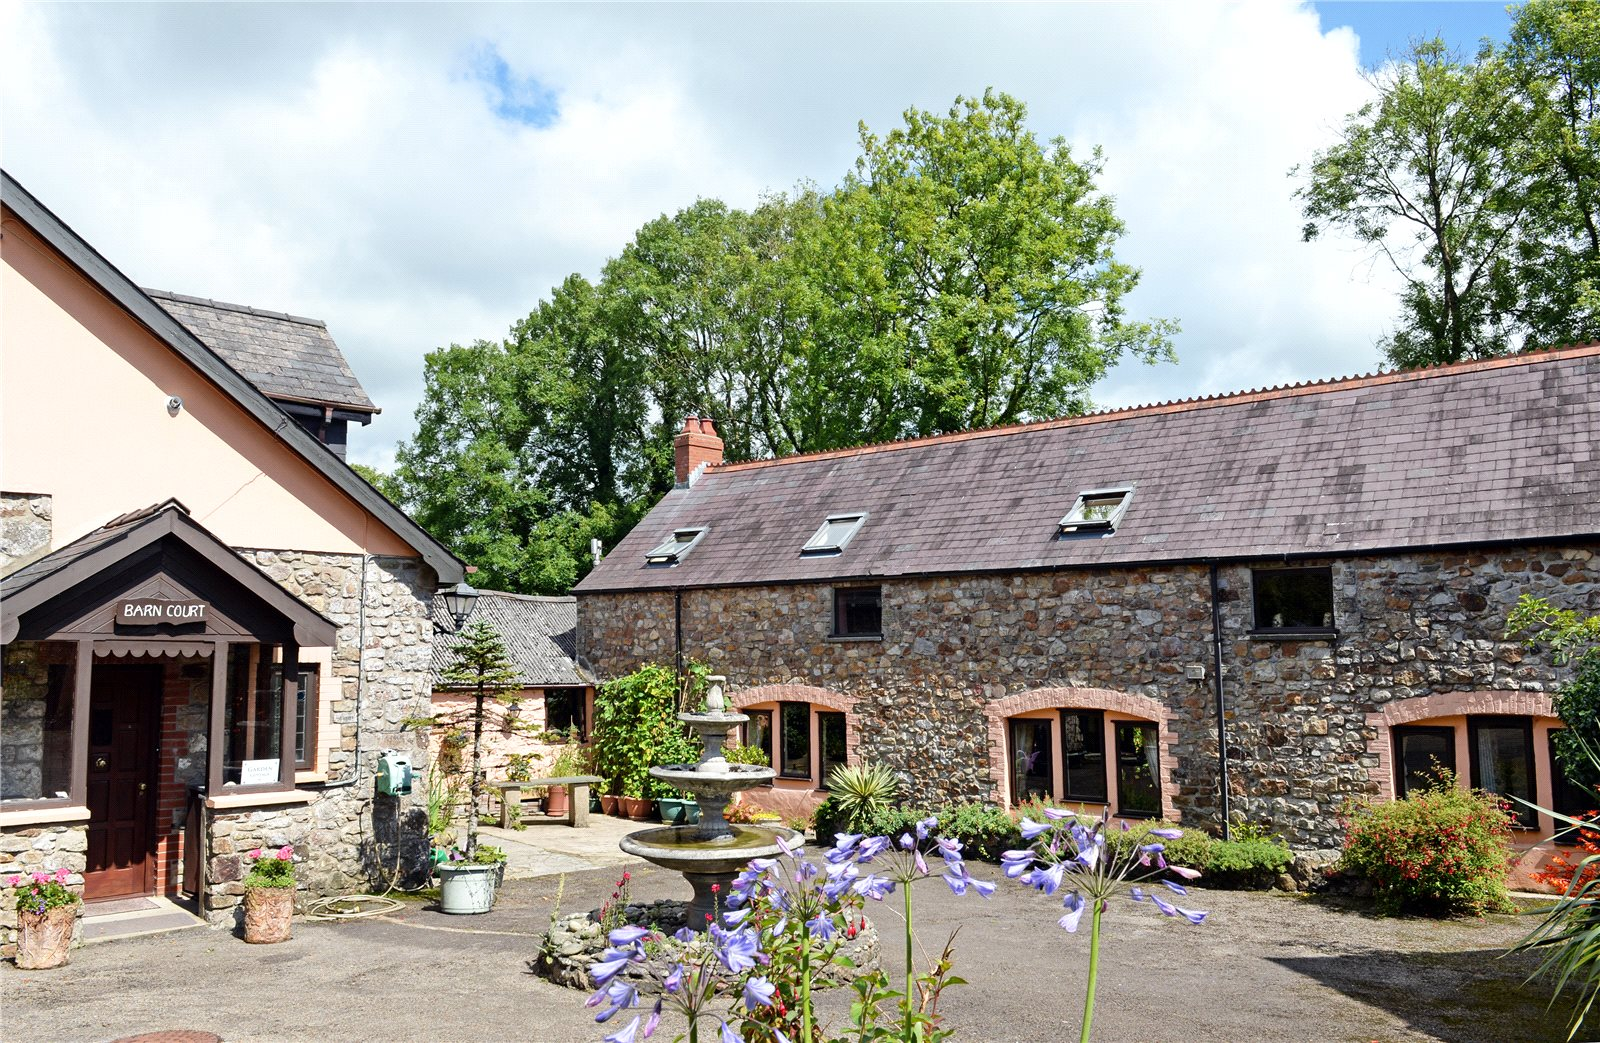 8 Bedrooms Detached House for sale in Barn Court, Templeton, Narberth, Pembrokeshire